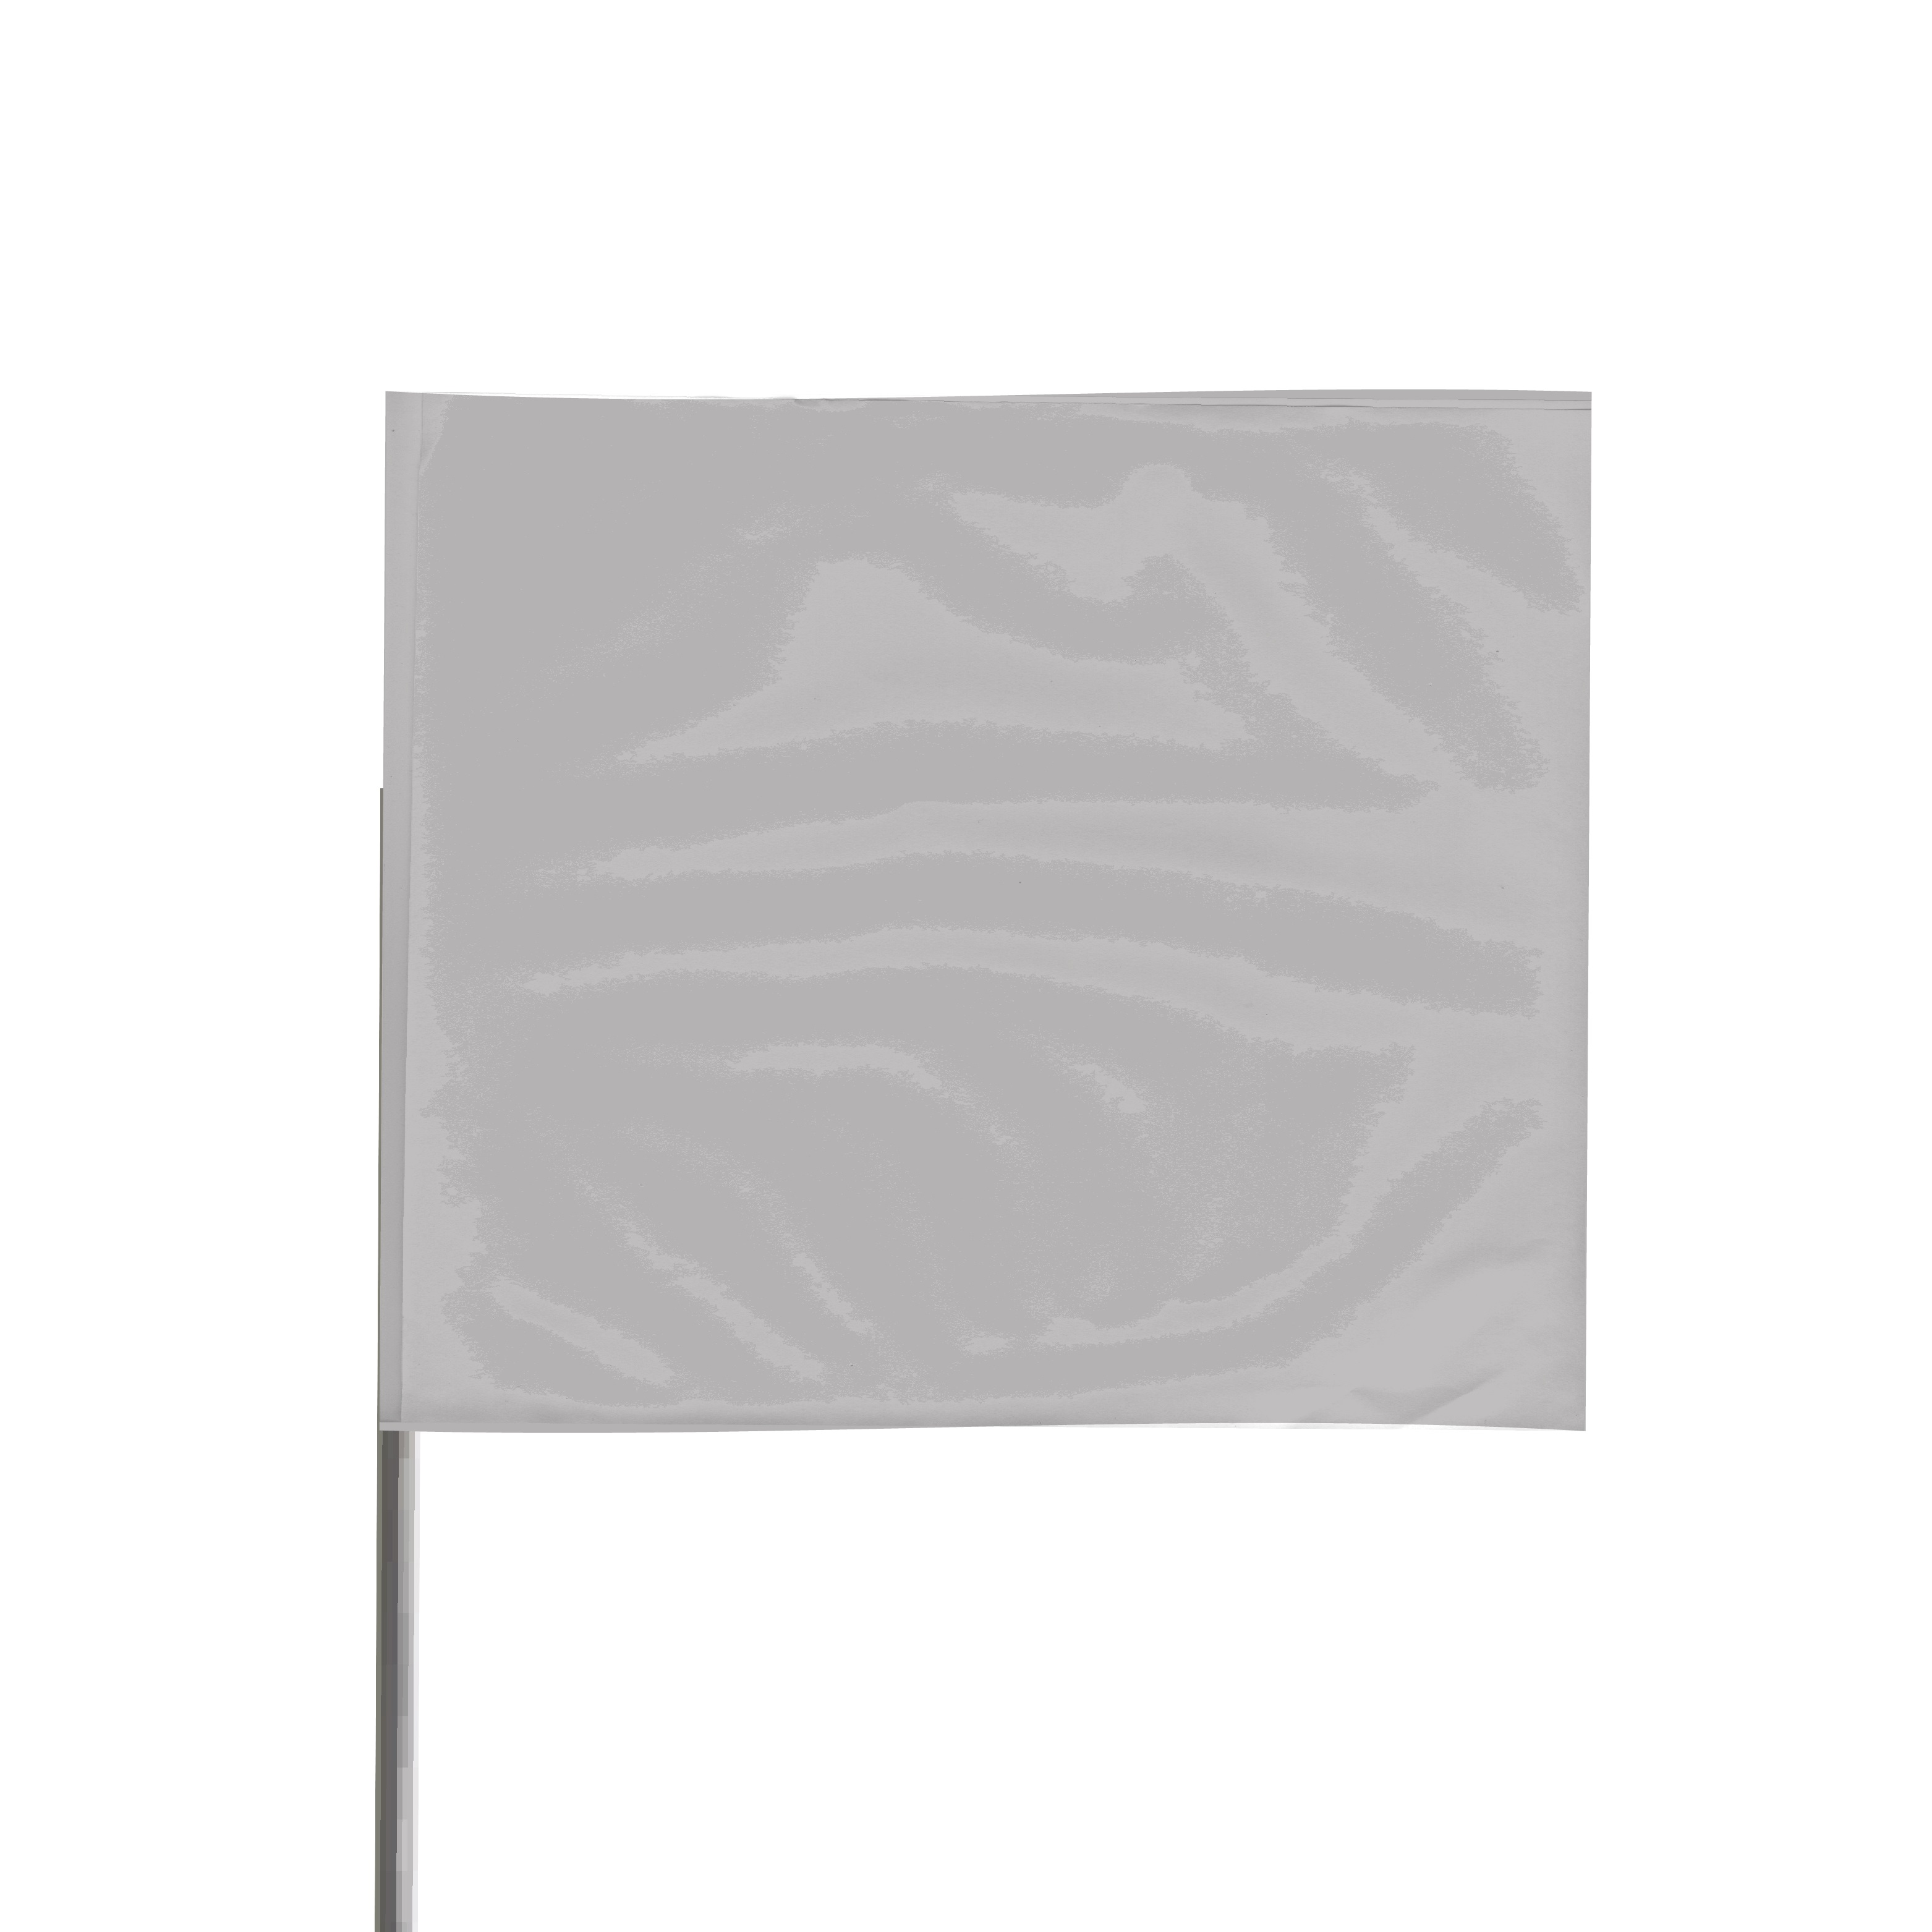 Presco Steel Wire Staff Marking Flags: 4 in. x 5 in. Flag / 21 in. Steel Wire (Silver) [1 Pack of 12 Flags]